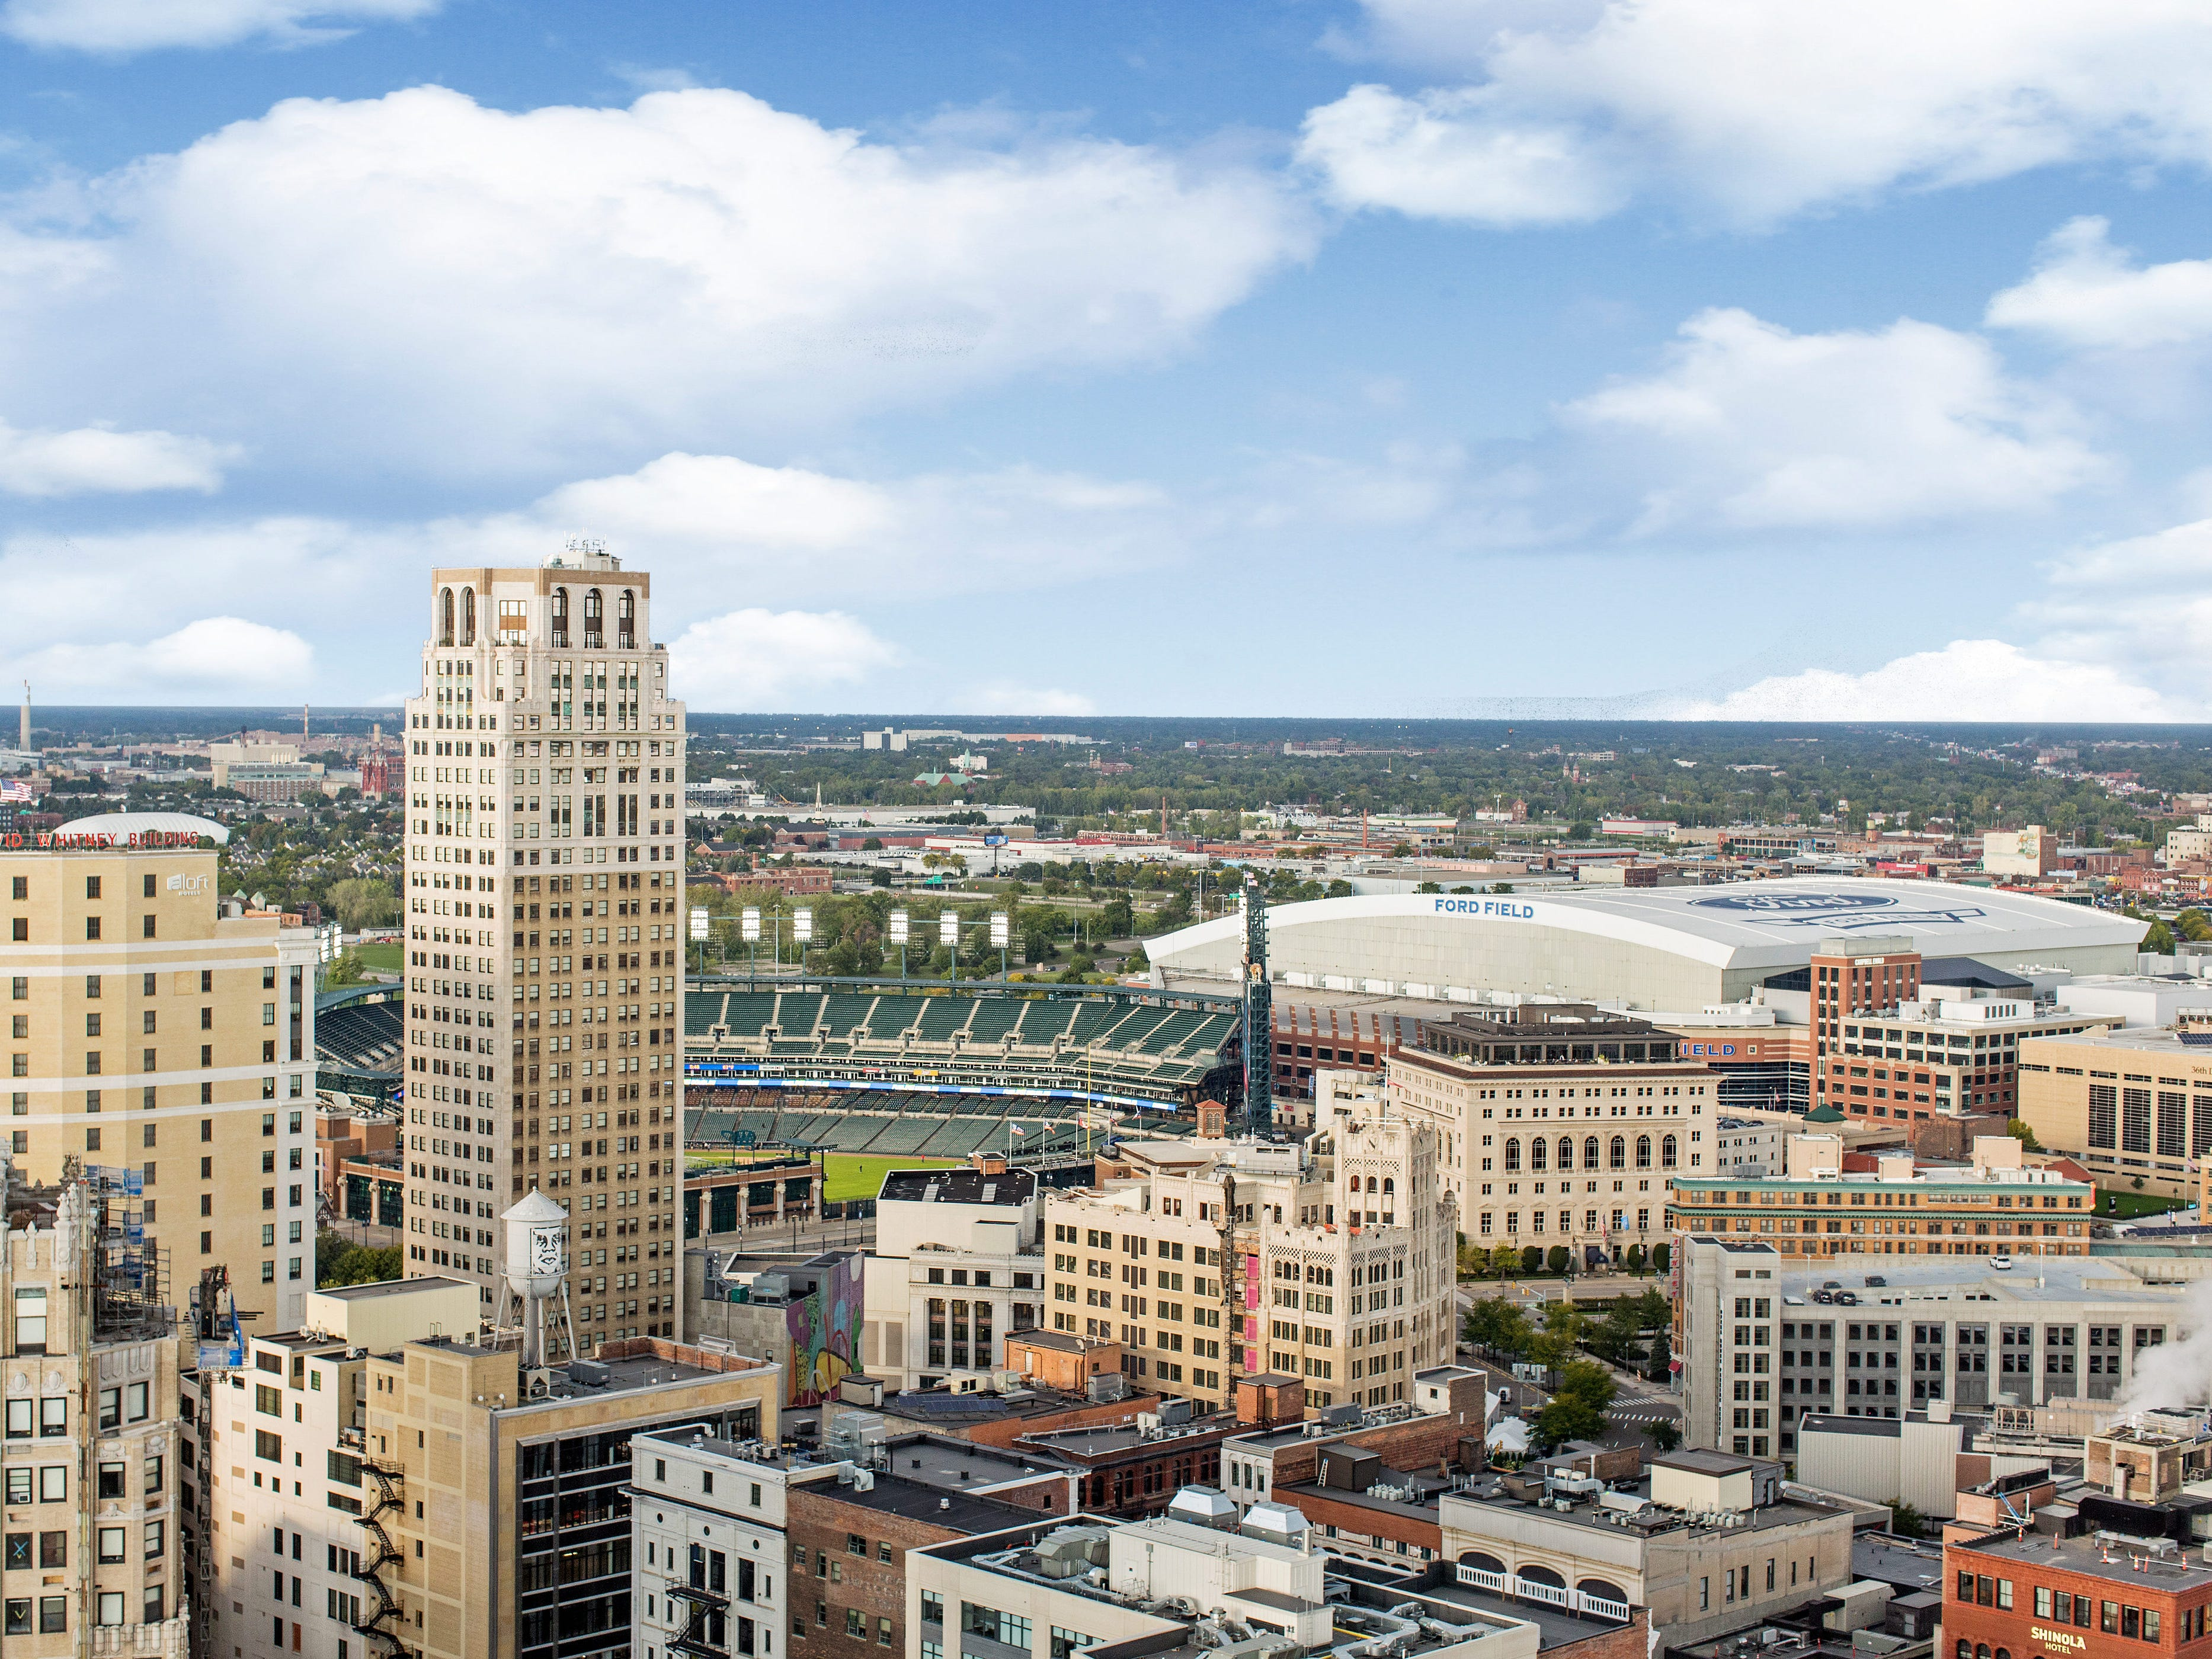 The view of the Detroit skyline is absolutely stunning from this penthouse condo at the top of the Westin Book Cadillac hotel building as Comerica Park and Ford Field are seen here.